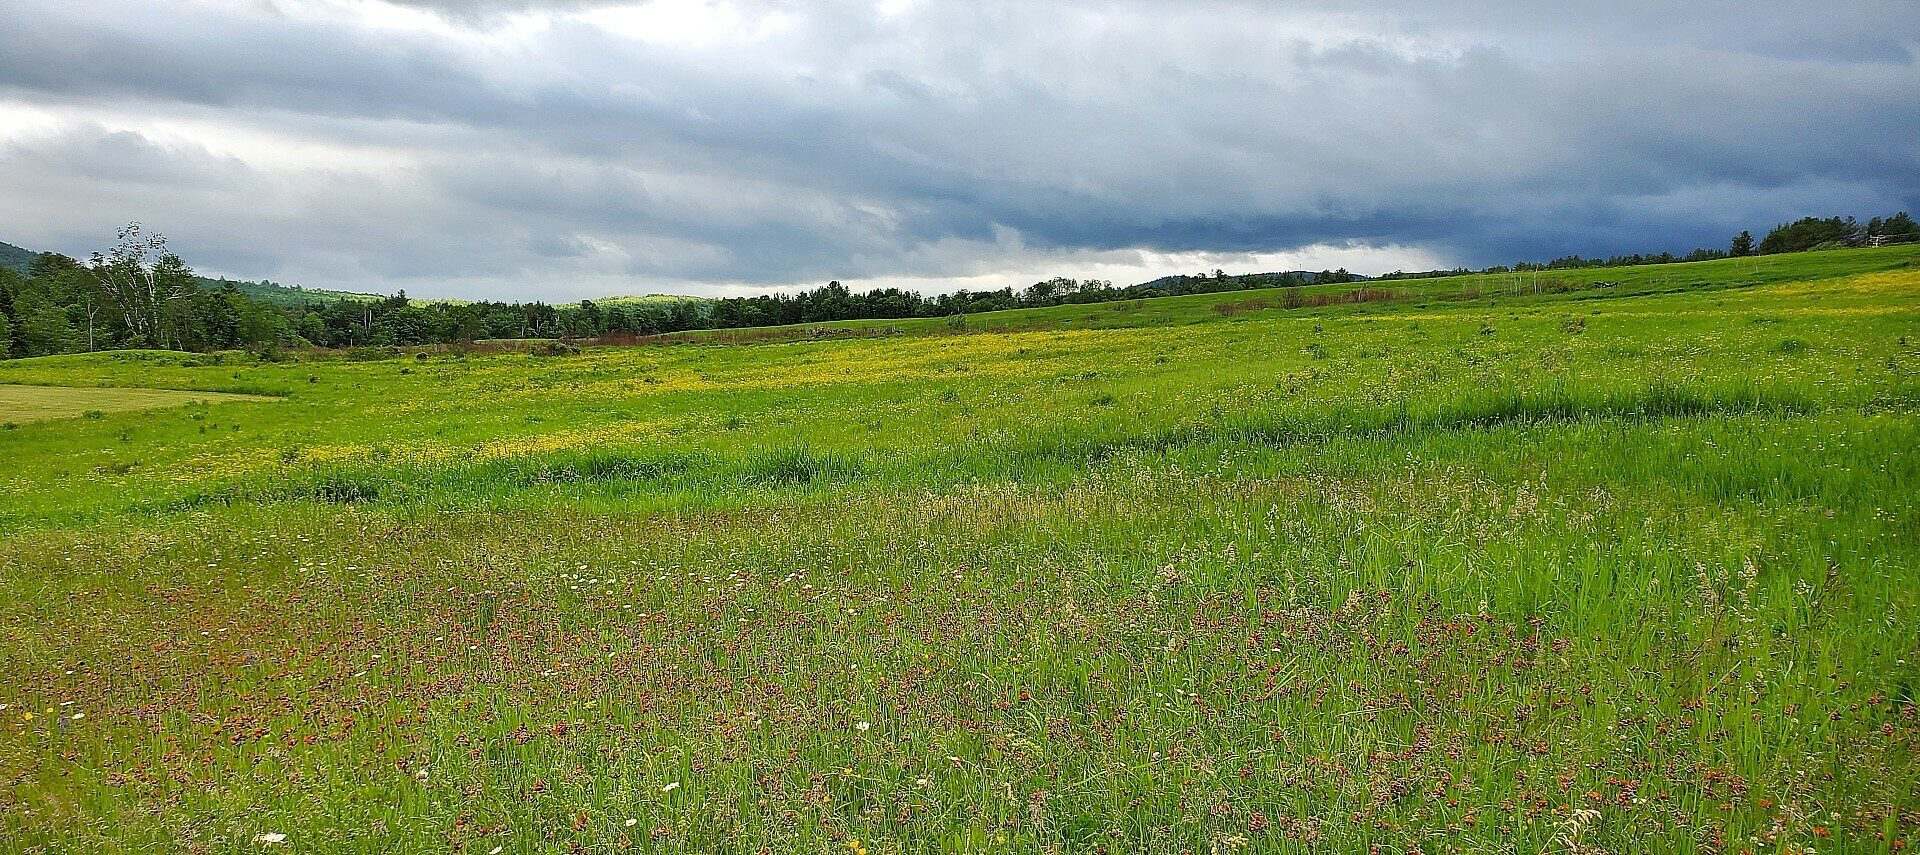 Wide open space of green grass and wild flowers with cloudy skies above